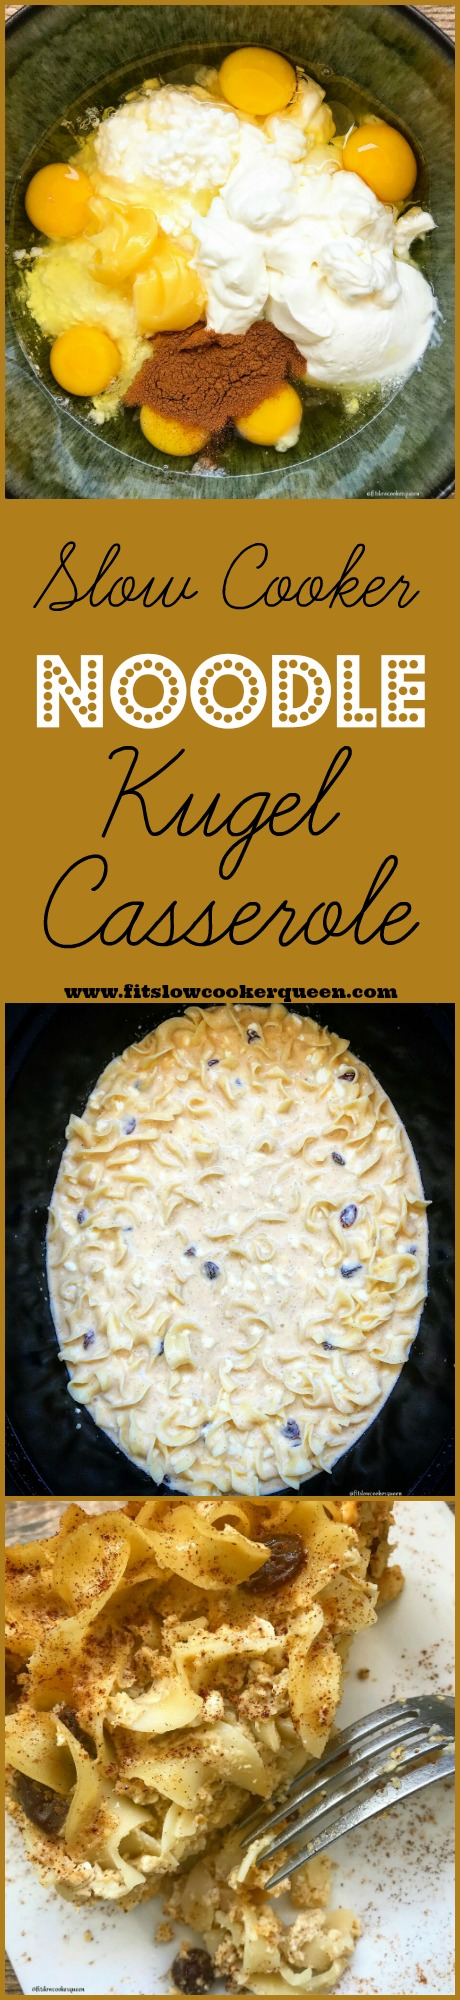 Kugel is a sweet or savory casserole that's the perfect side dish to any holiday dinner. Plus it cooks in the slow cooker freeing up your oven.